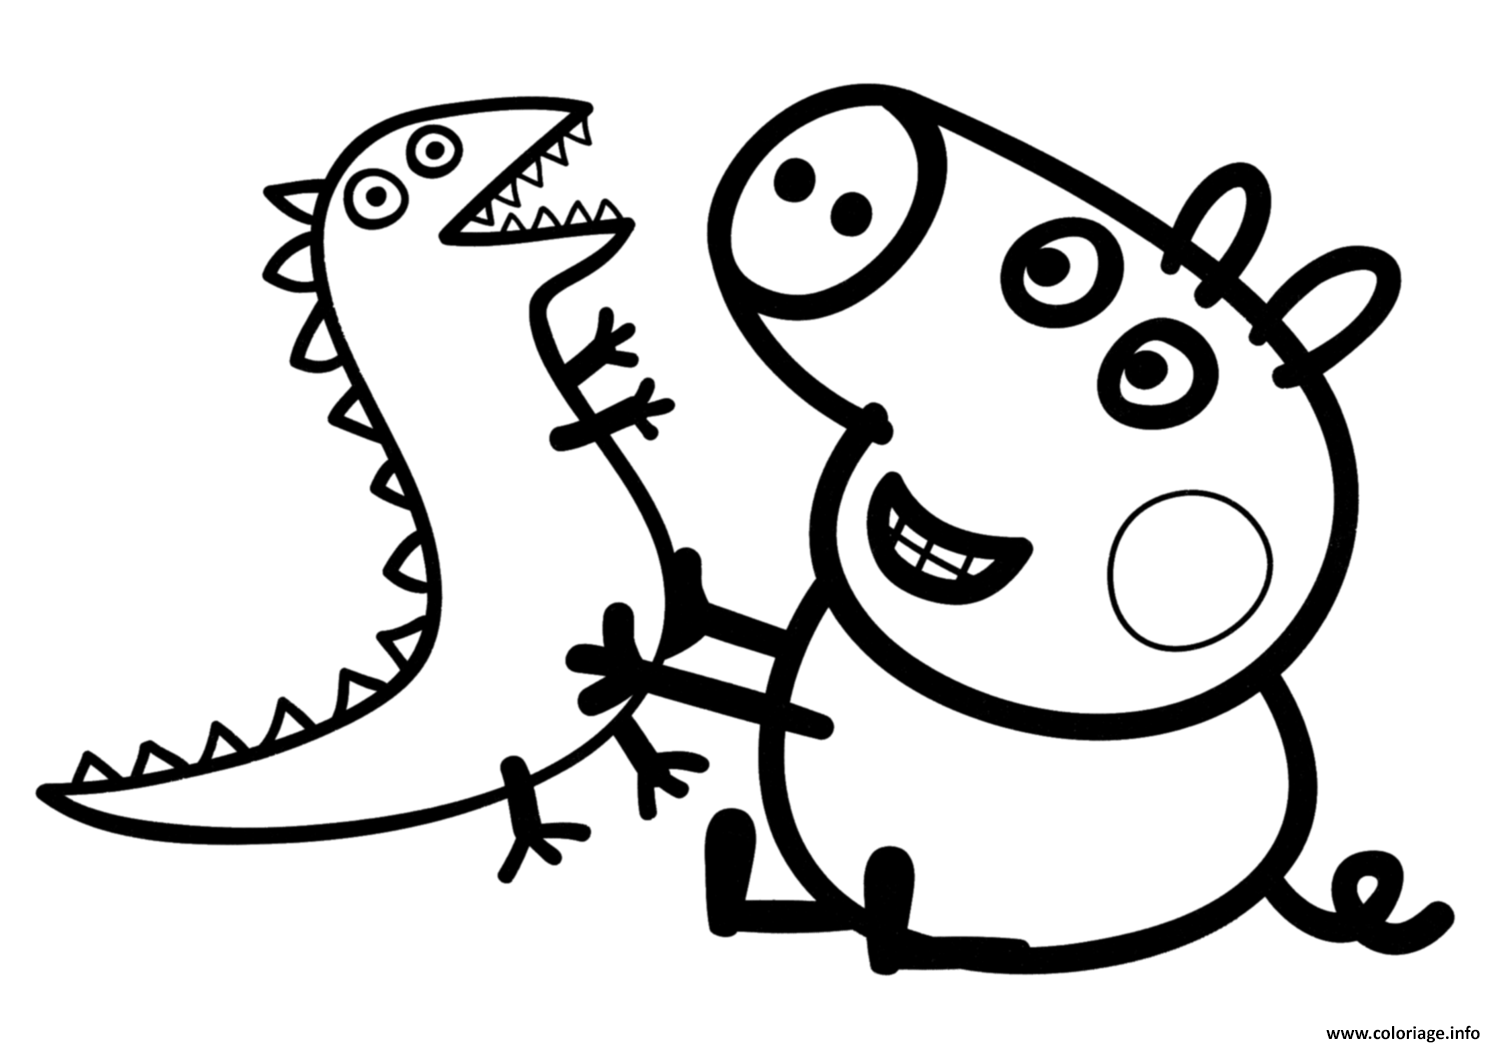 Génial Coloriage Peppa Pig 27 sur Coloriage Pages with Coloriage Peppa Pig